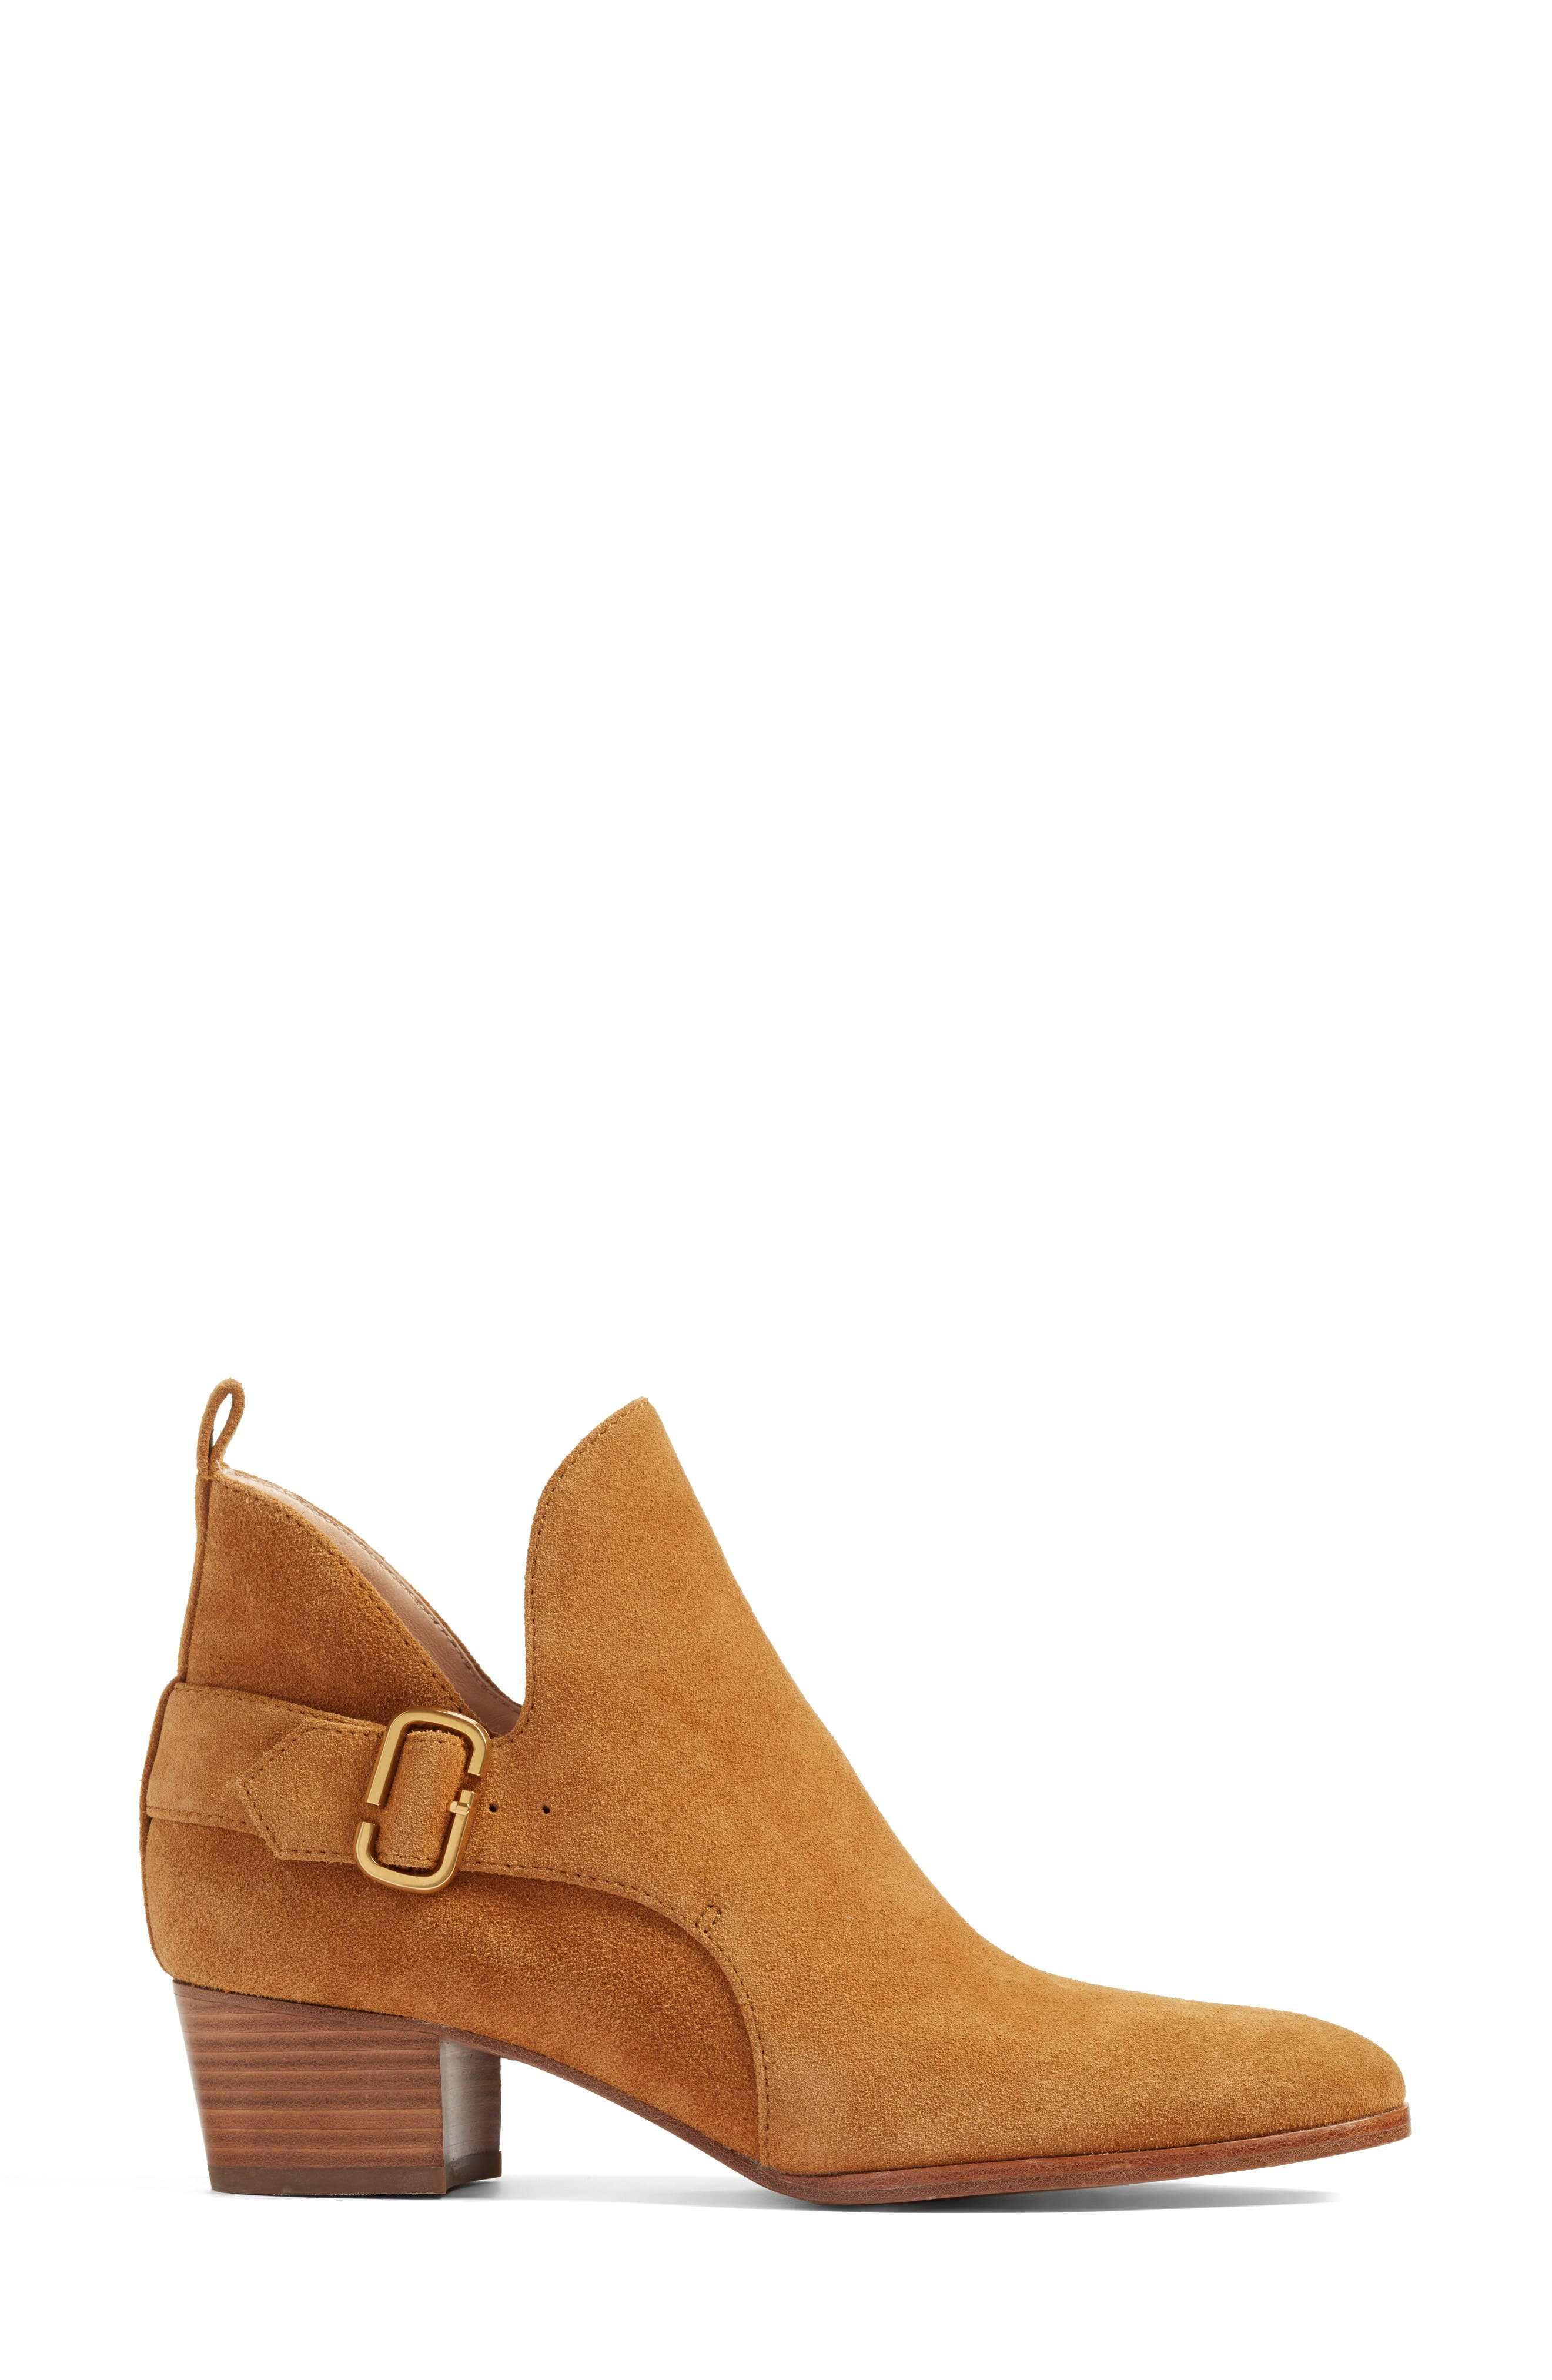 Alternate Image 3  - Marc Jacobs Ginger Interlock Bootie (Women)